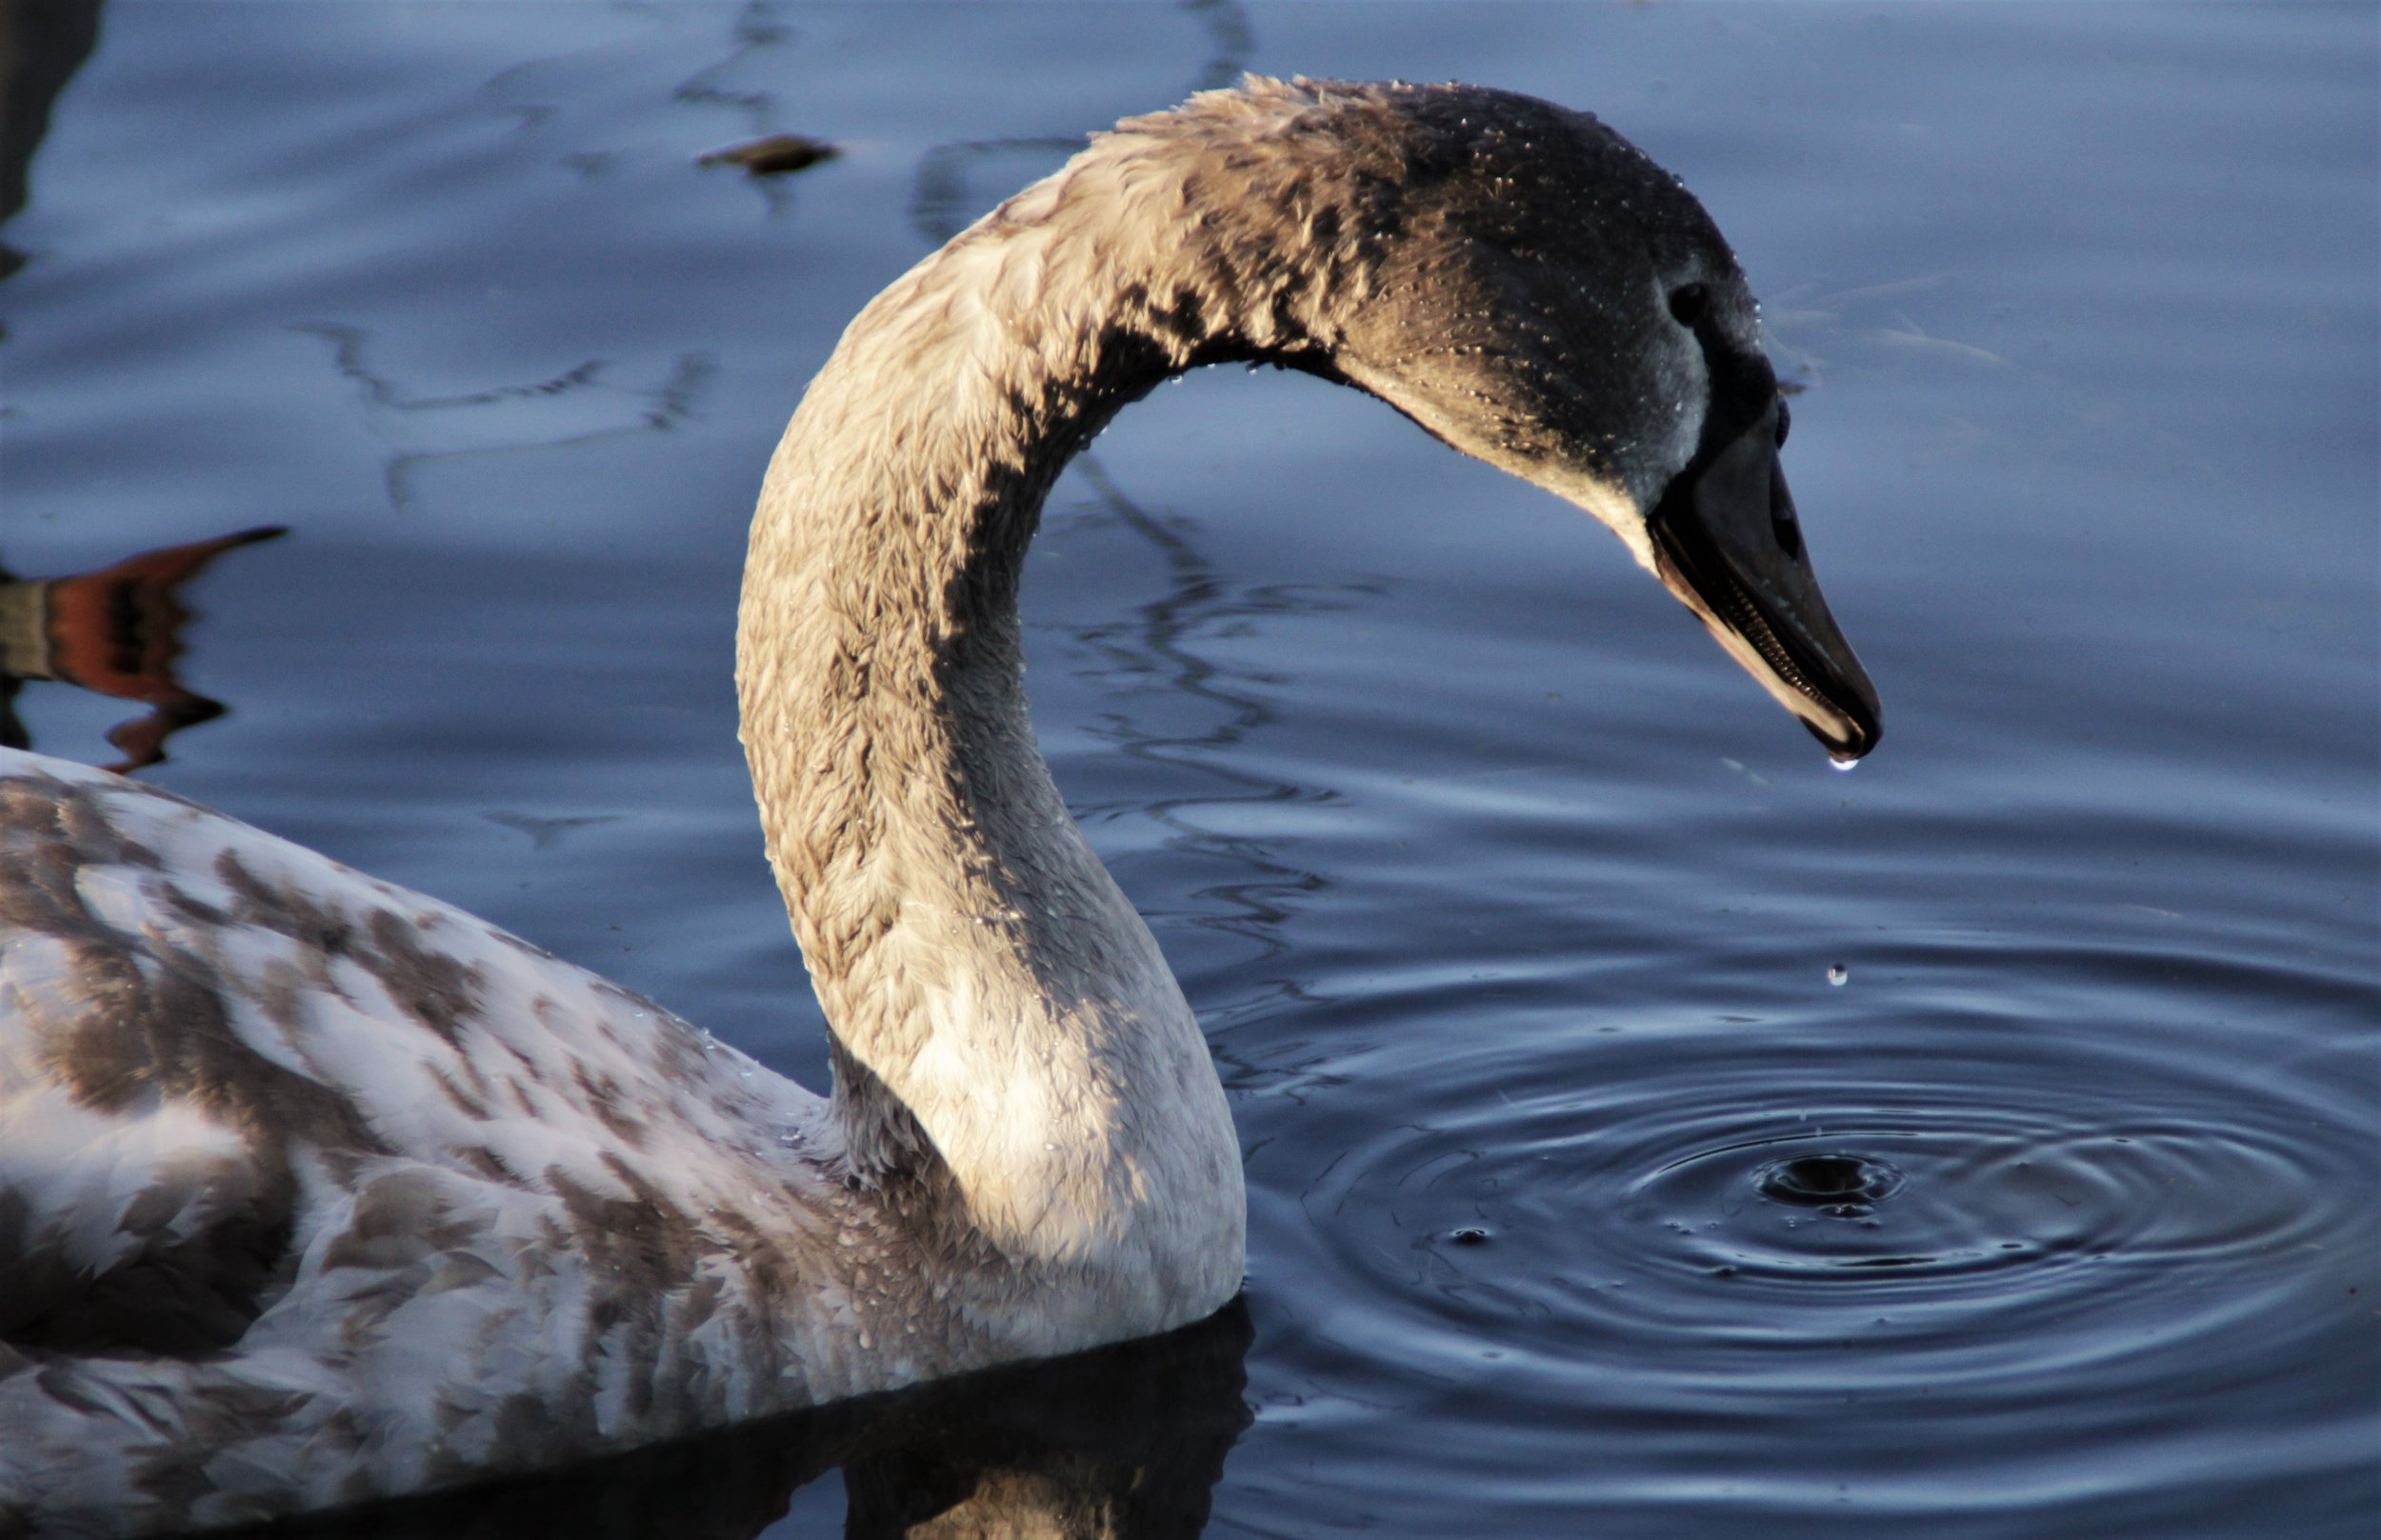 A fully grown trumpeter swan can live up to 20 years old.